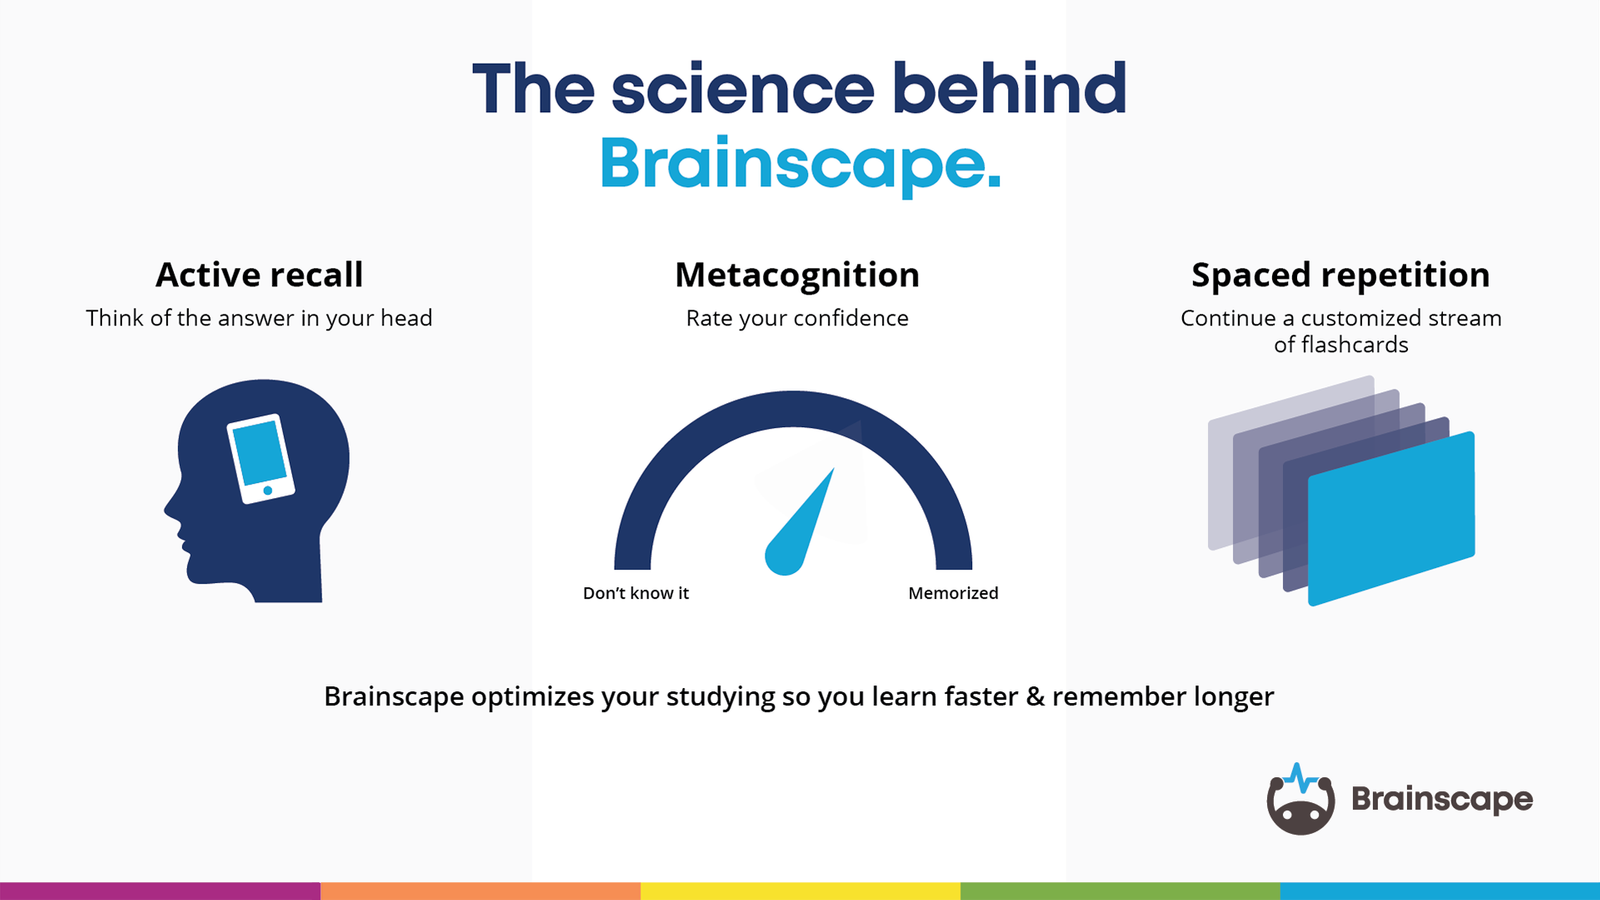 The science behind Brainscape